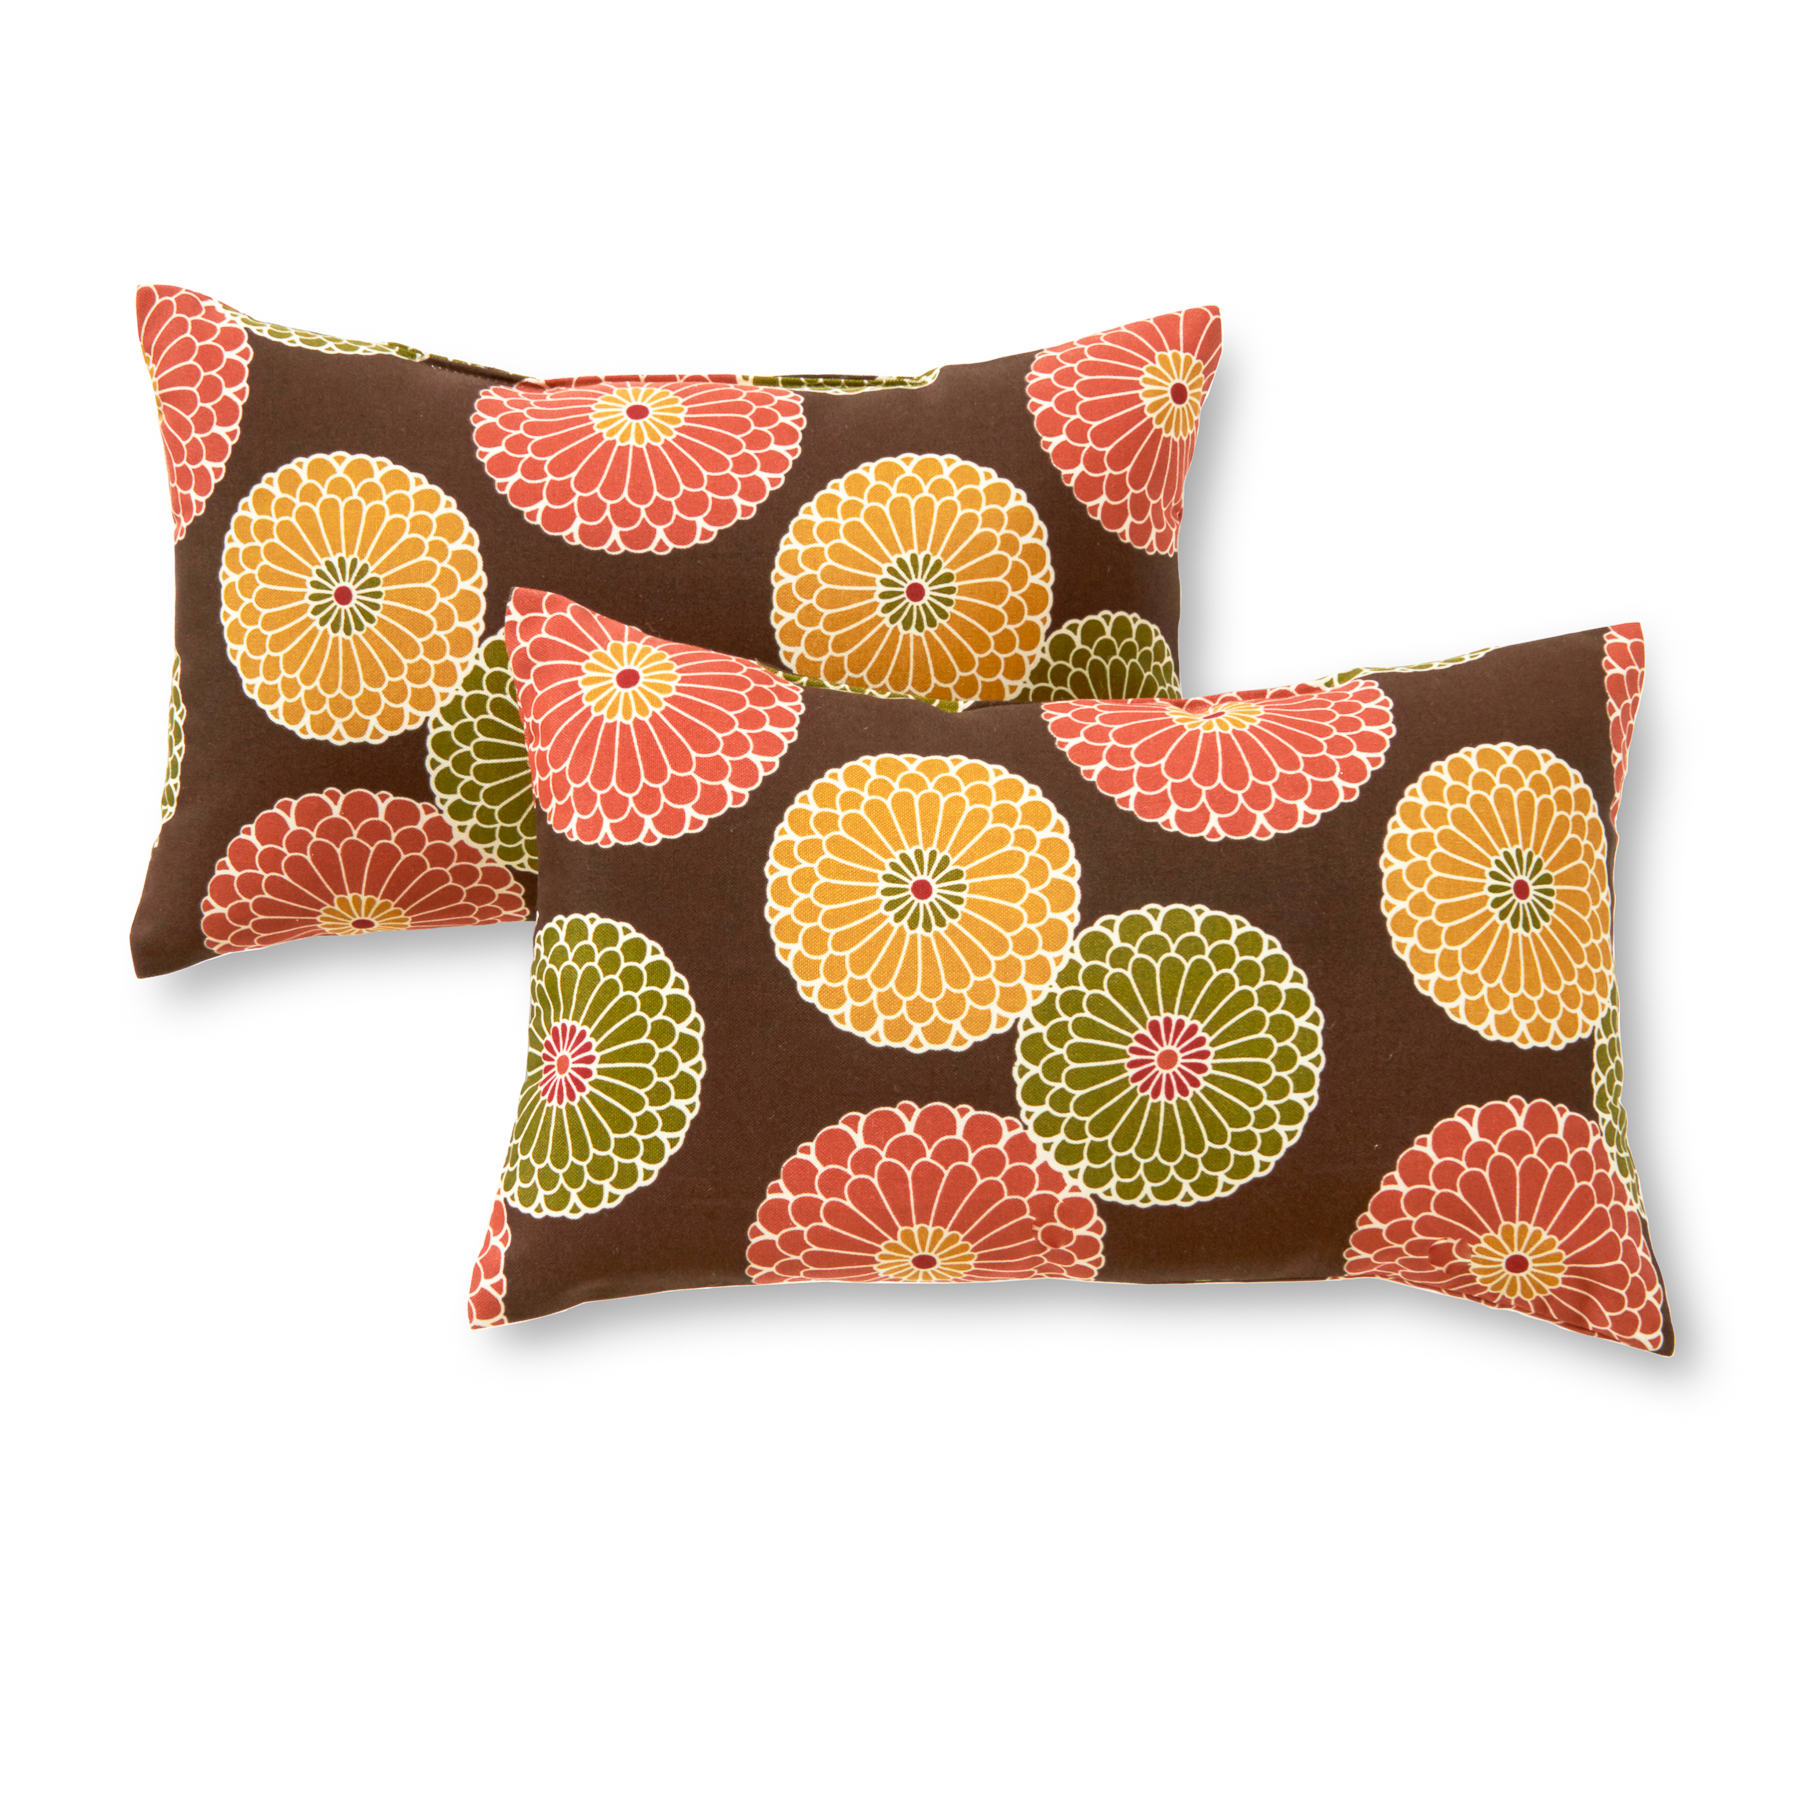 Greendale Home Fashions Flowers on Chocolate Rectangle Outdoor Accent Pillow, Set of 2